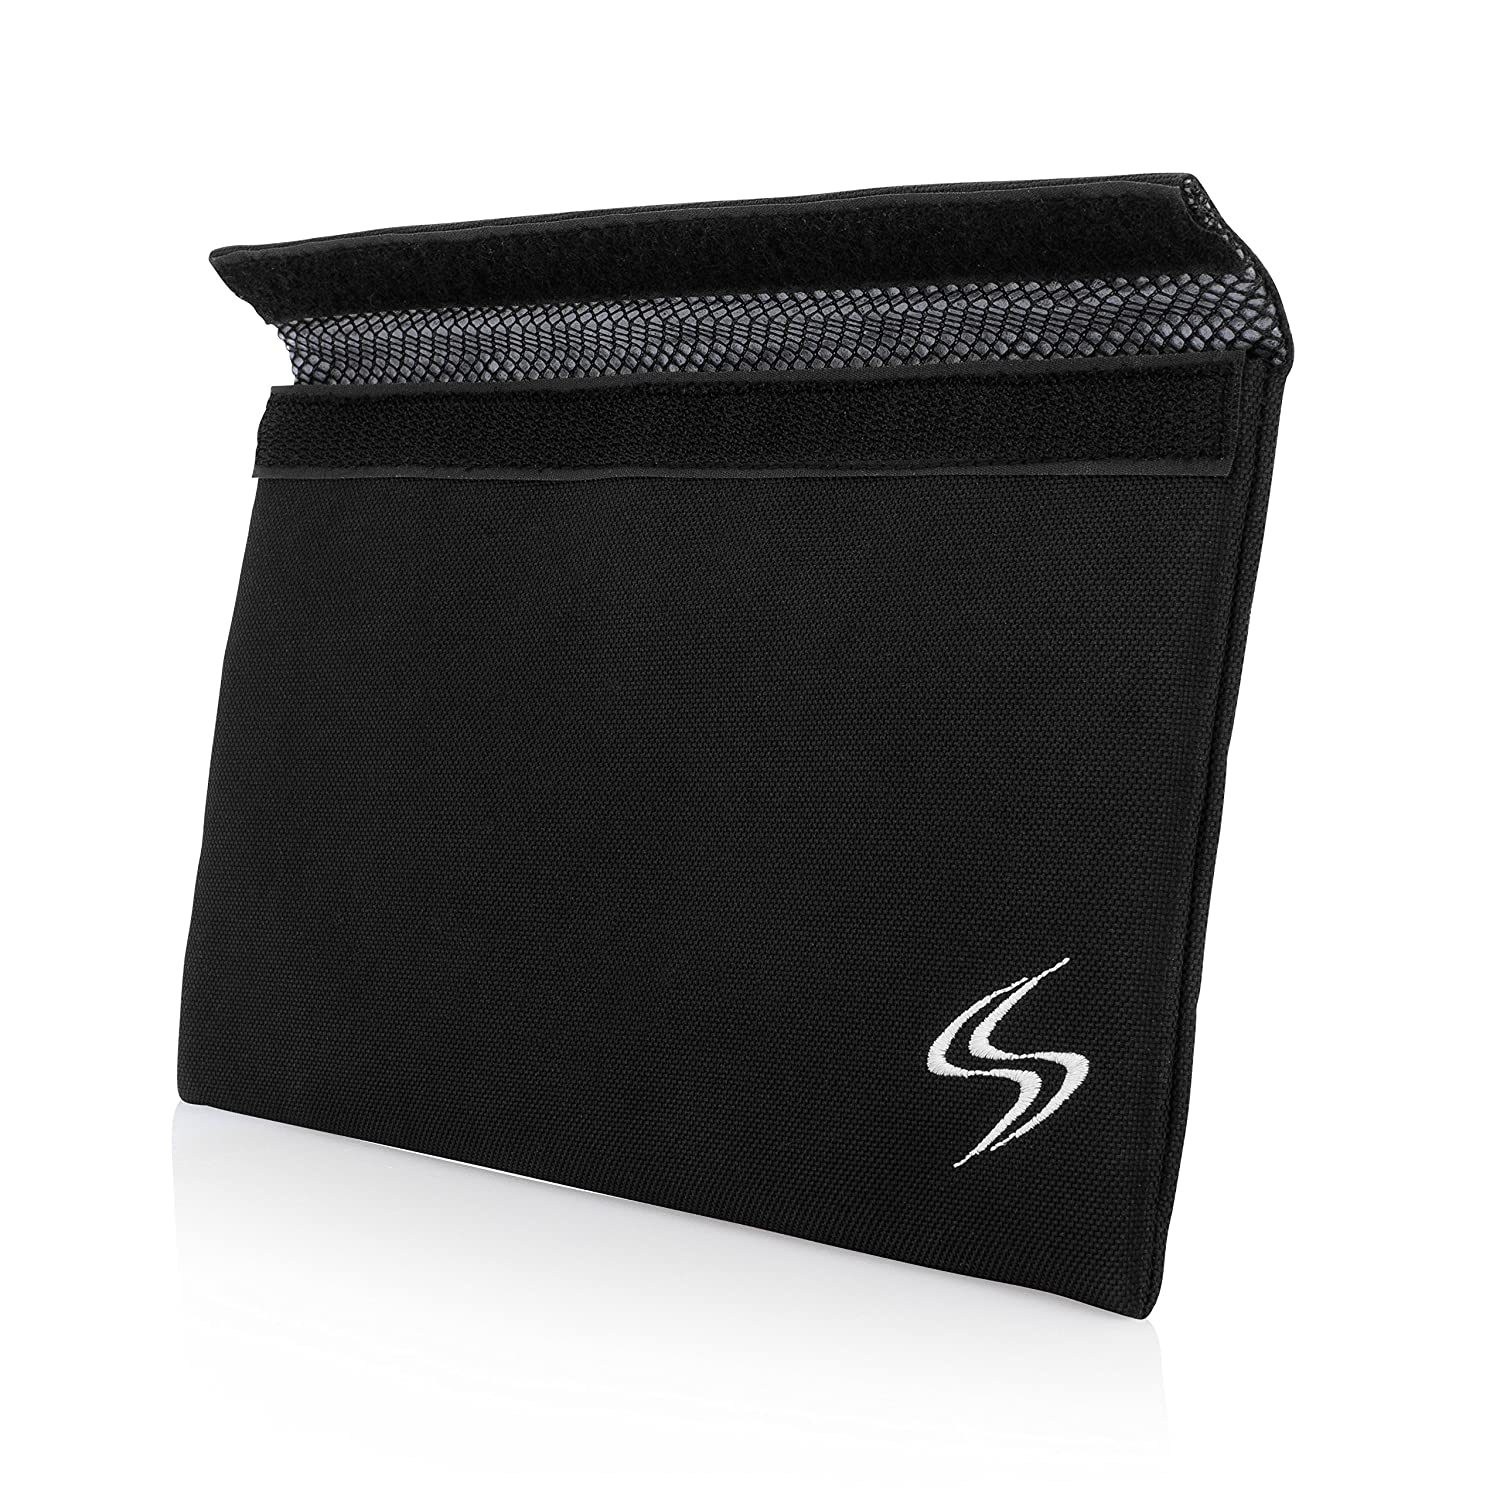 Smell Proof Bag - Smart Stash Pouch 11x6 for Herbs, Weed Grinder, Pipe |  Large Odor Lock Container - Carbon Lined for Discreet Odorless Travel  Storage